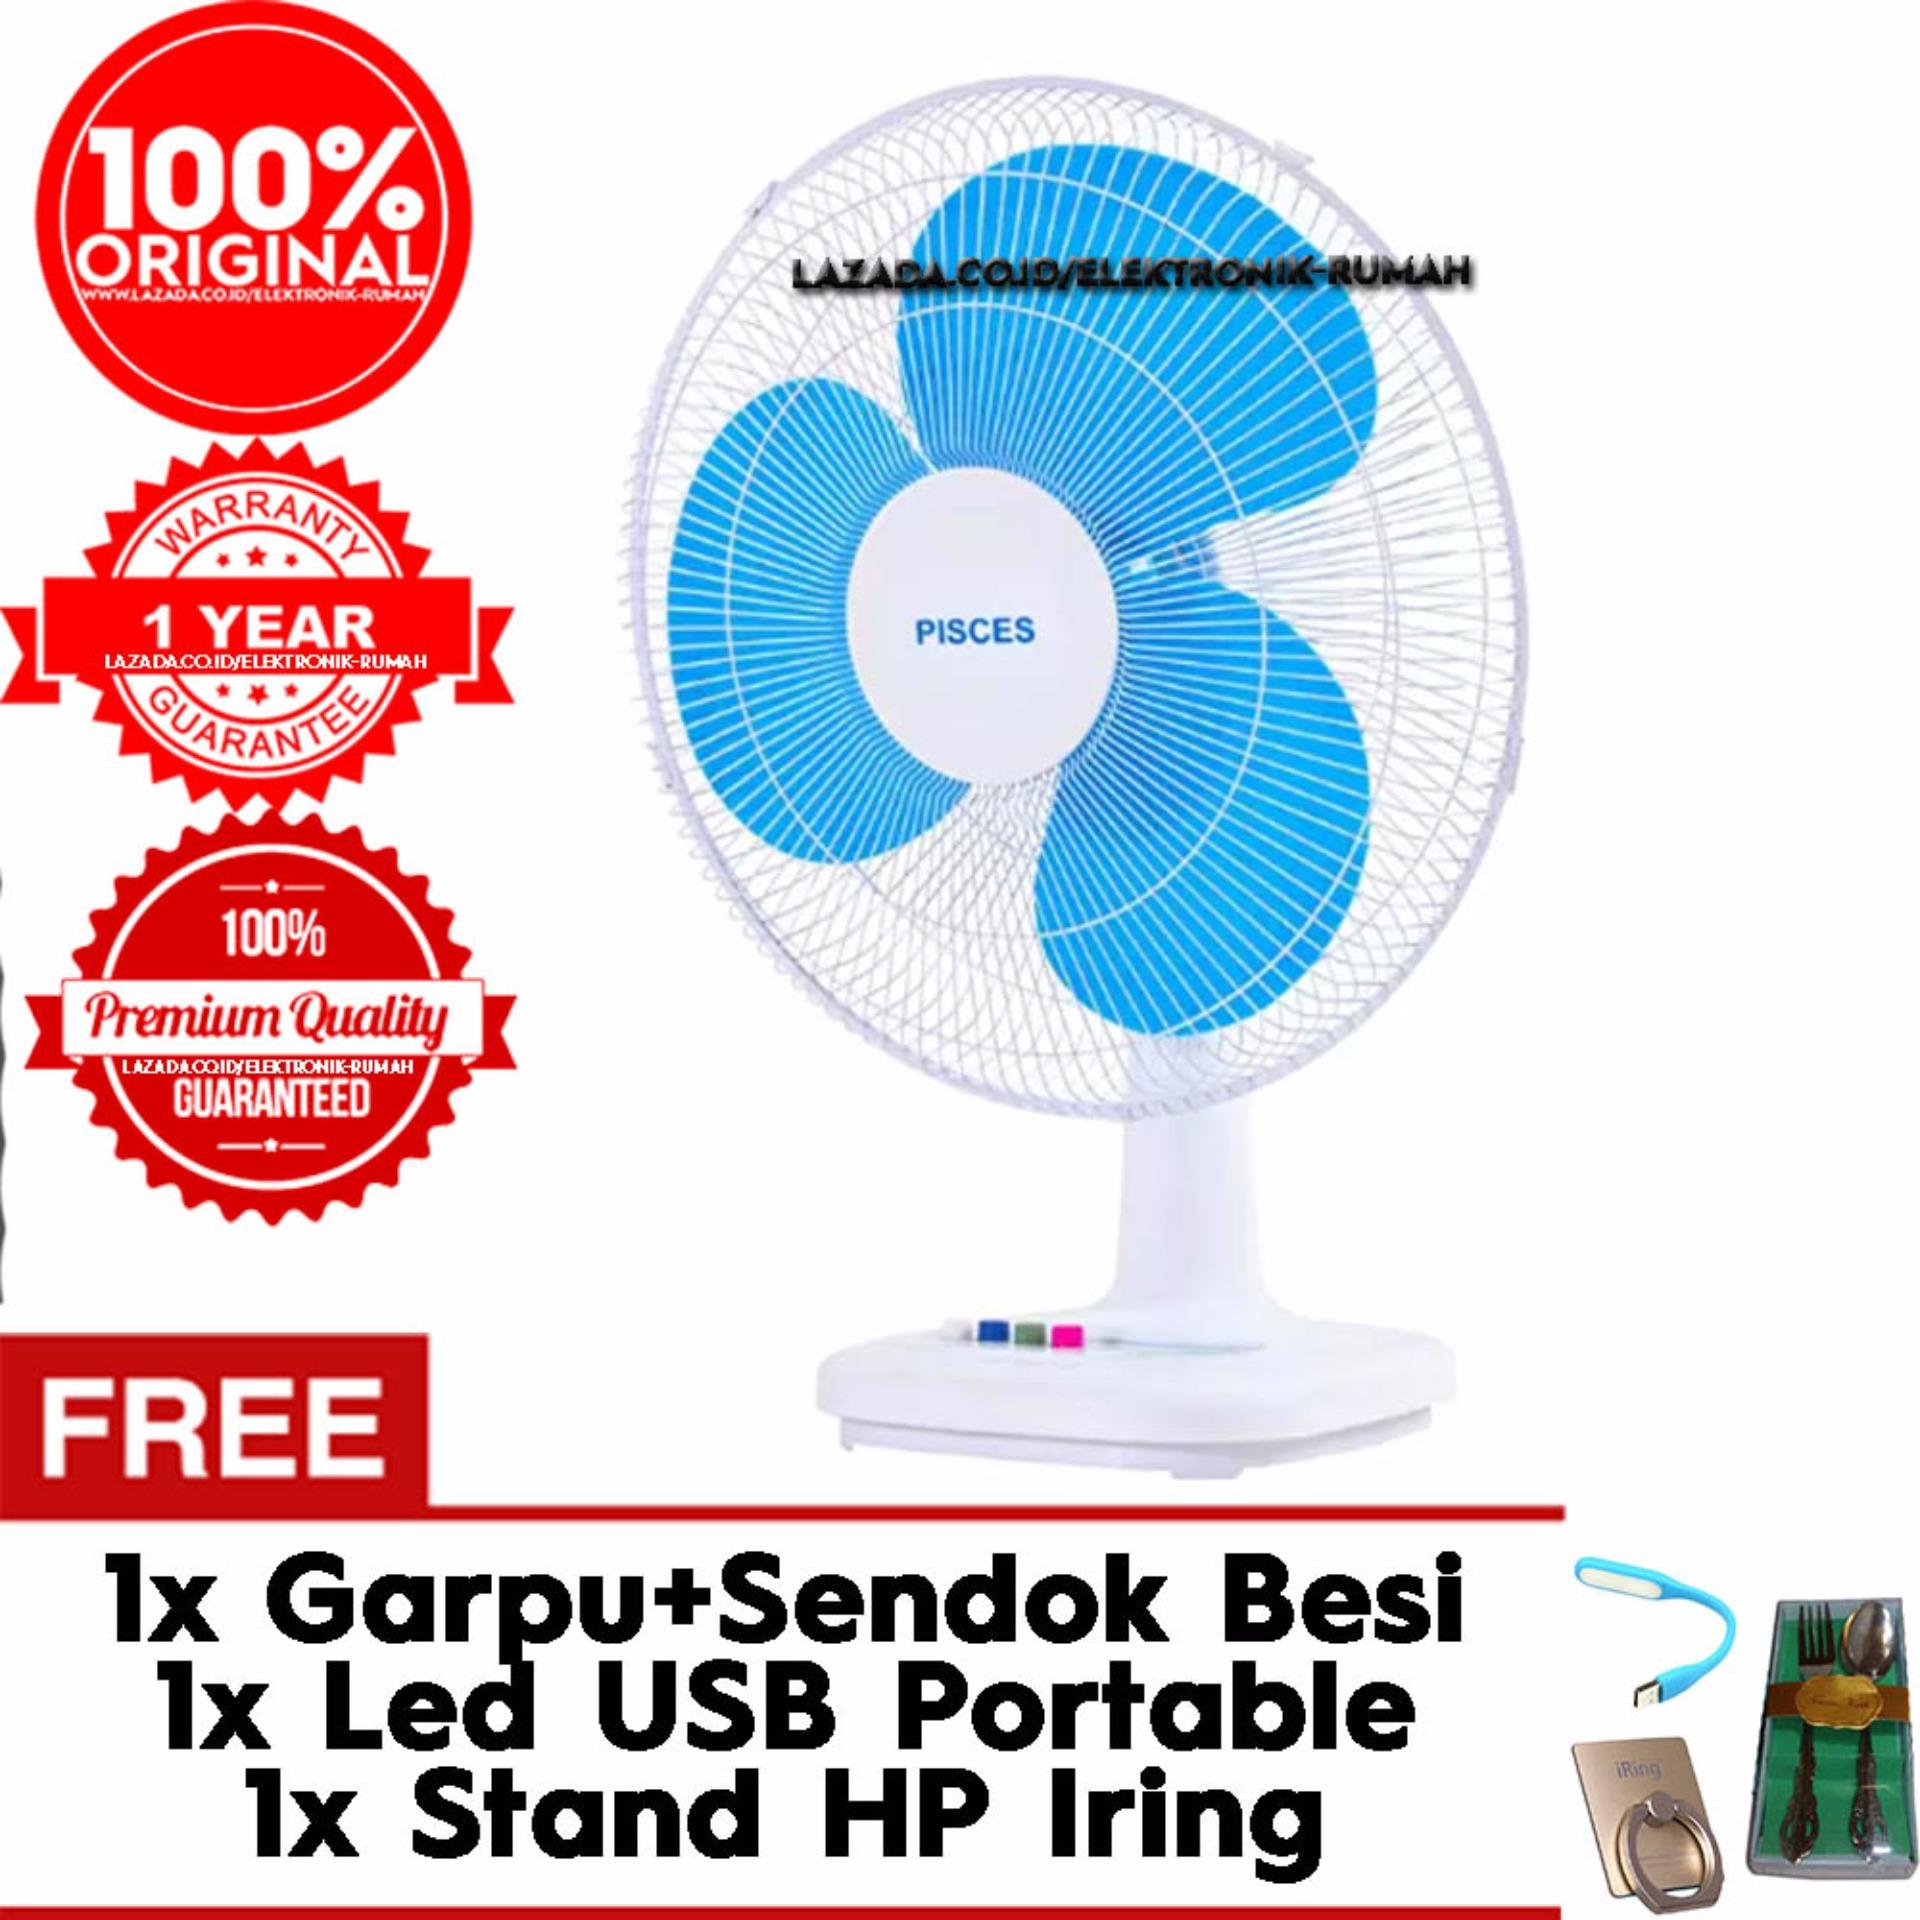 Hot Deals Pisces Kipas Angin Meja 16 Inch Desk Fan Nt1601df Usb Mini Portable Besi Kokoh Gratis Iringstand Sendok